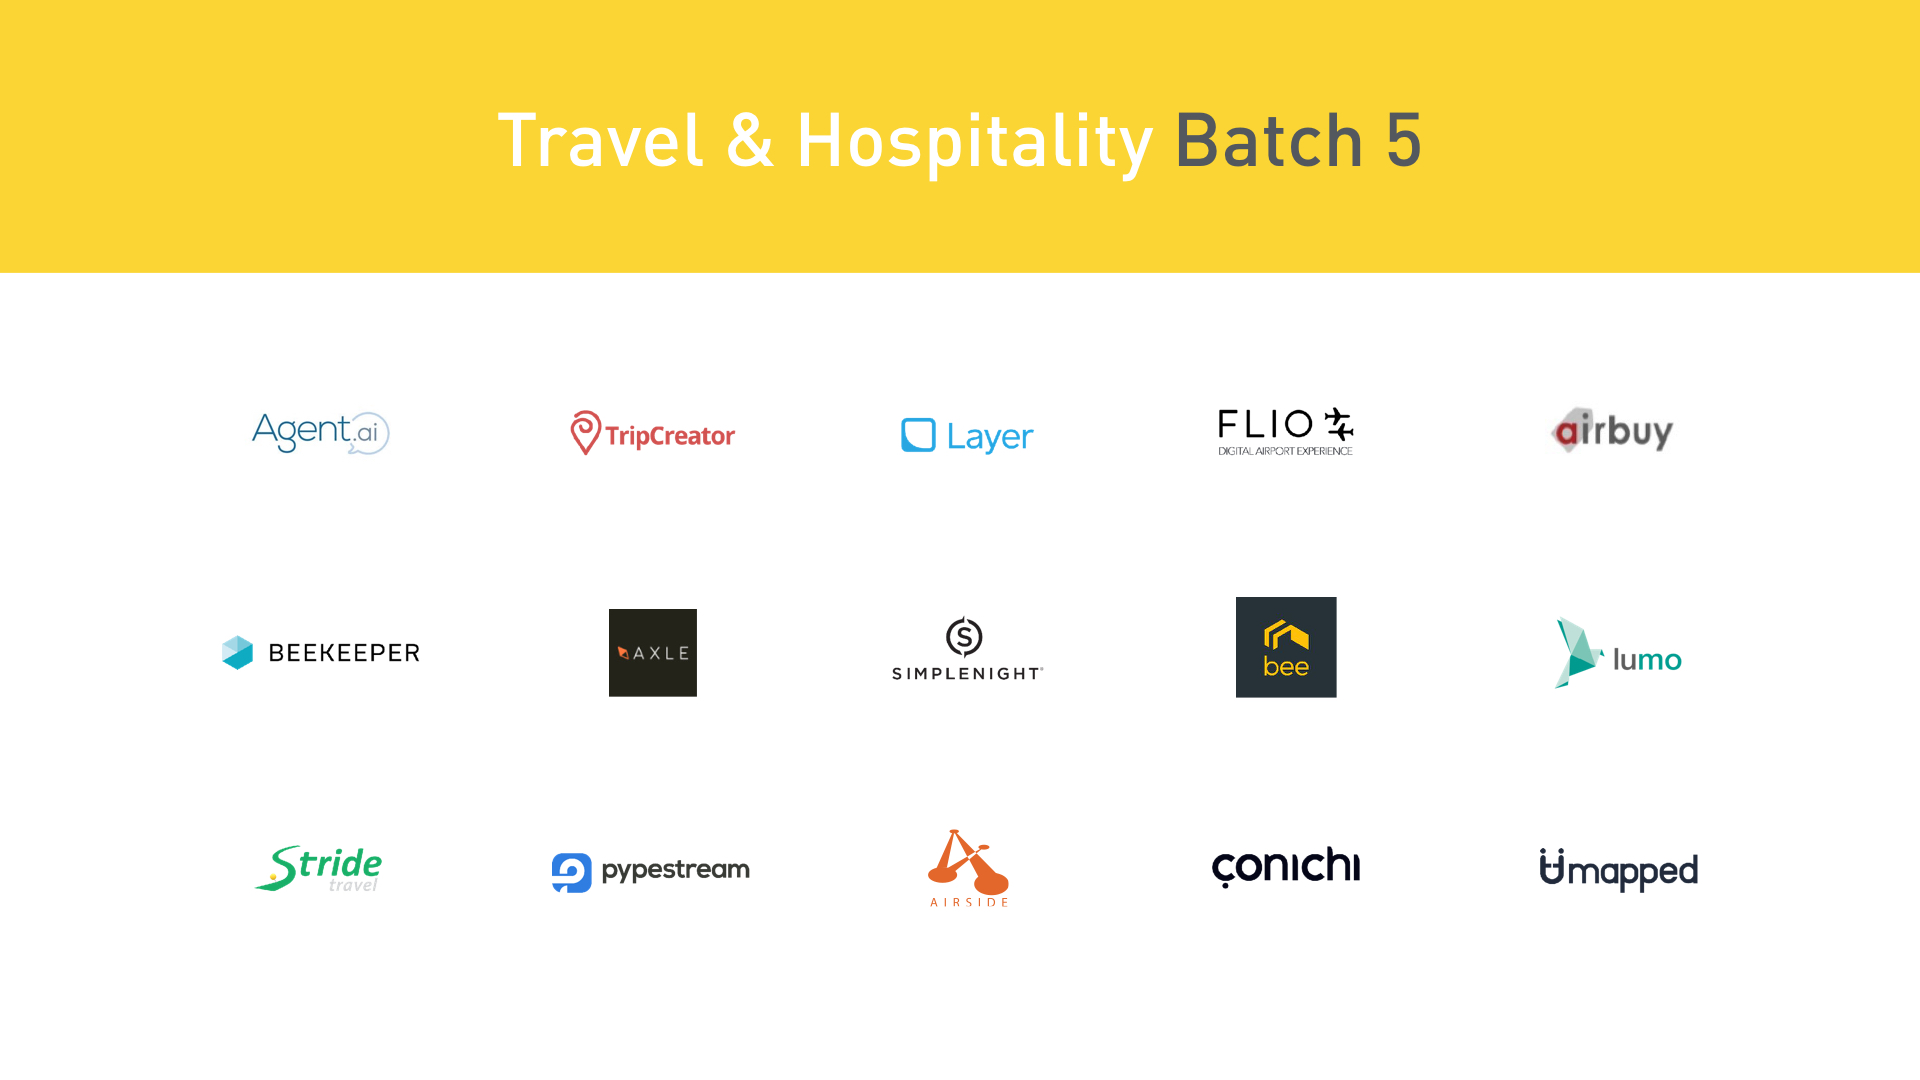 Plug and Play New Traveltech startups